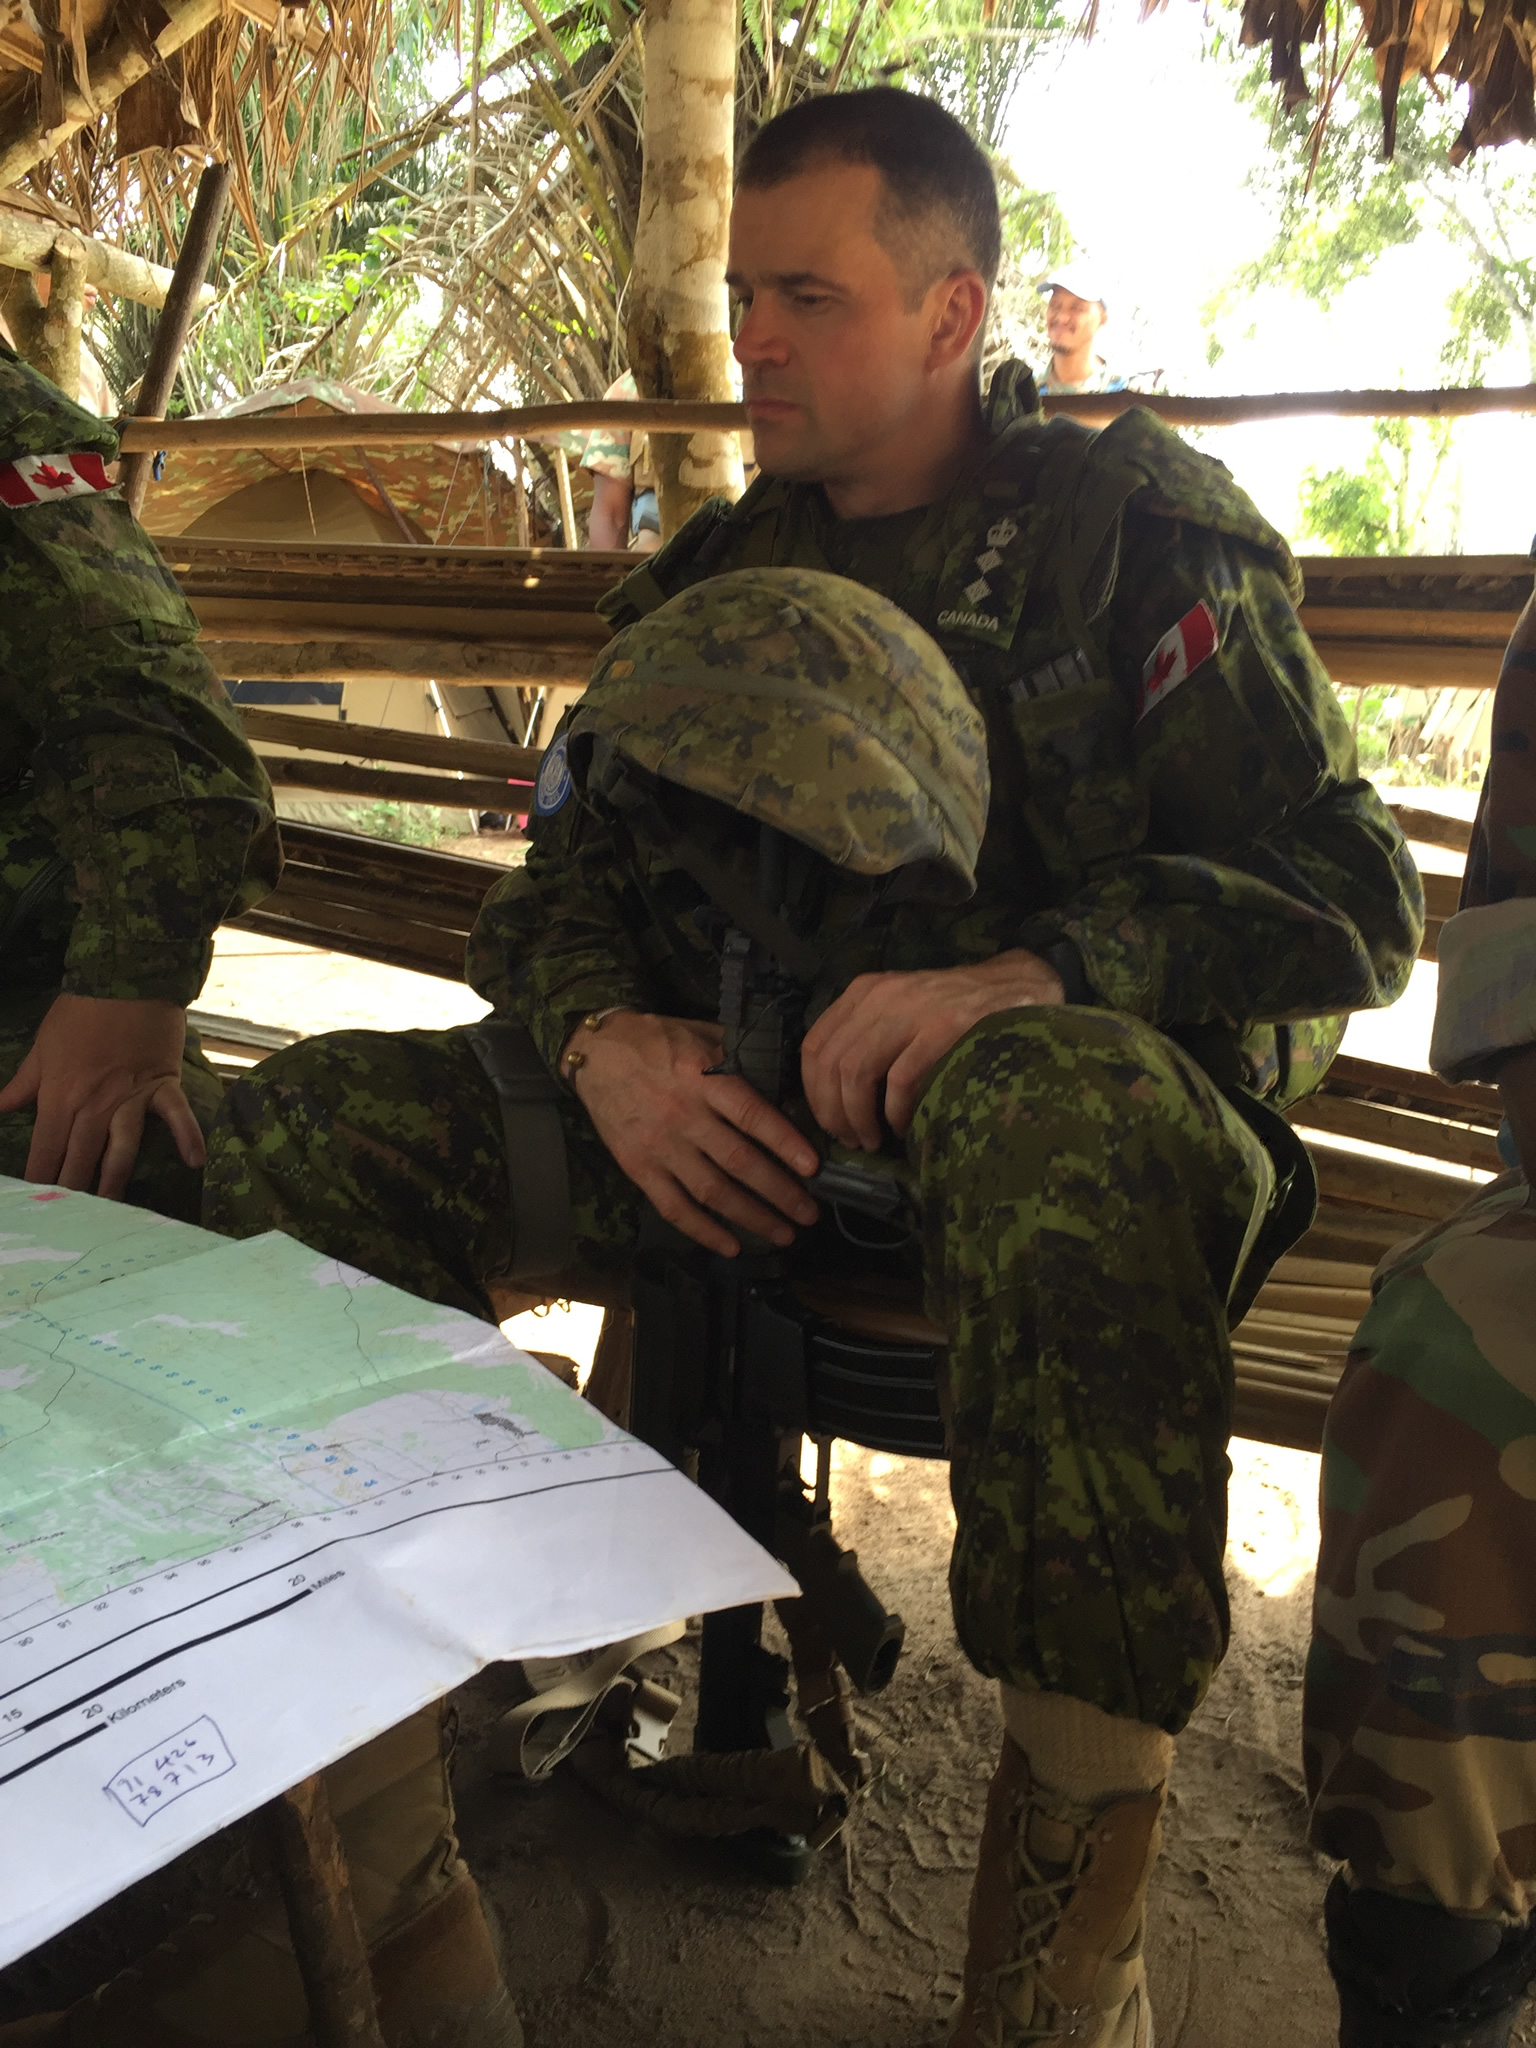 North Kivu, Democratic Republic of the Congo. July 2016 – Colonel Huet, the Task Force Commander of Operation CROCODILE, is back briefed on the plan to assault an objective as part of Op NYOKA.  Op NYOKA was an operation with the objective of disrupting the activities of Les Forces démocratiques de libération du Rwanda (FDLR) in the province of North Kivu. (Photo credit: MONUSCO)